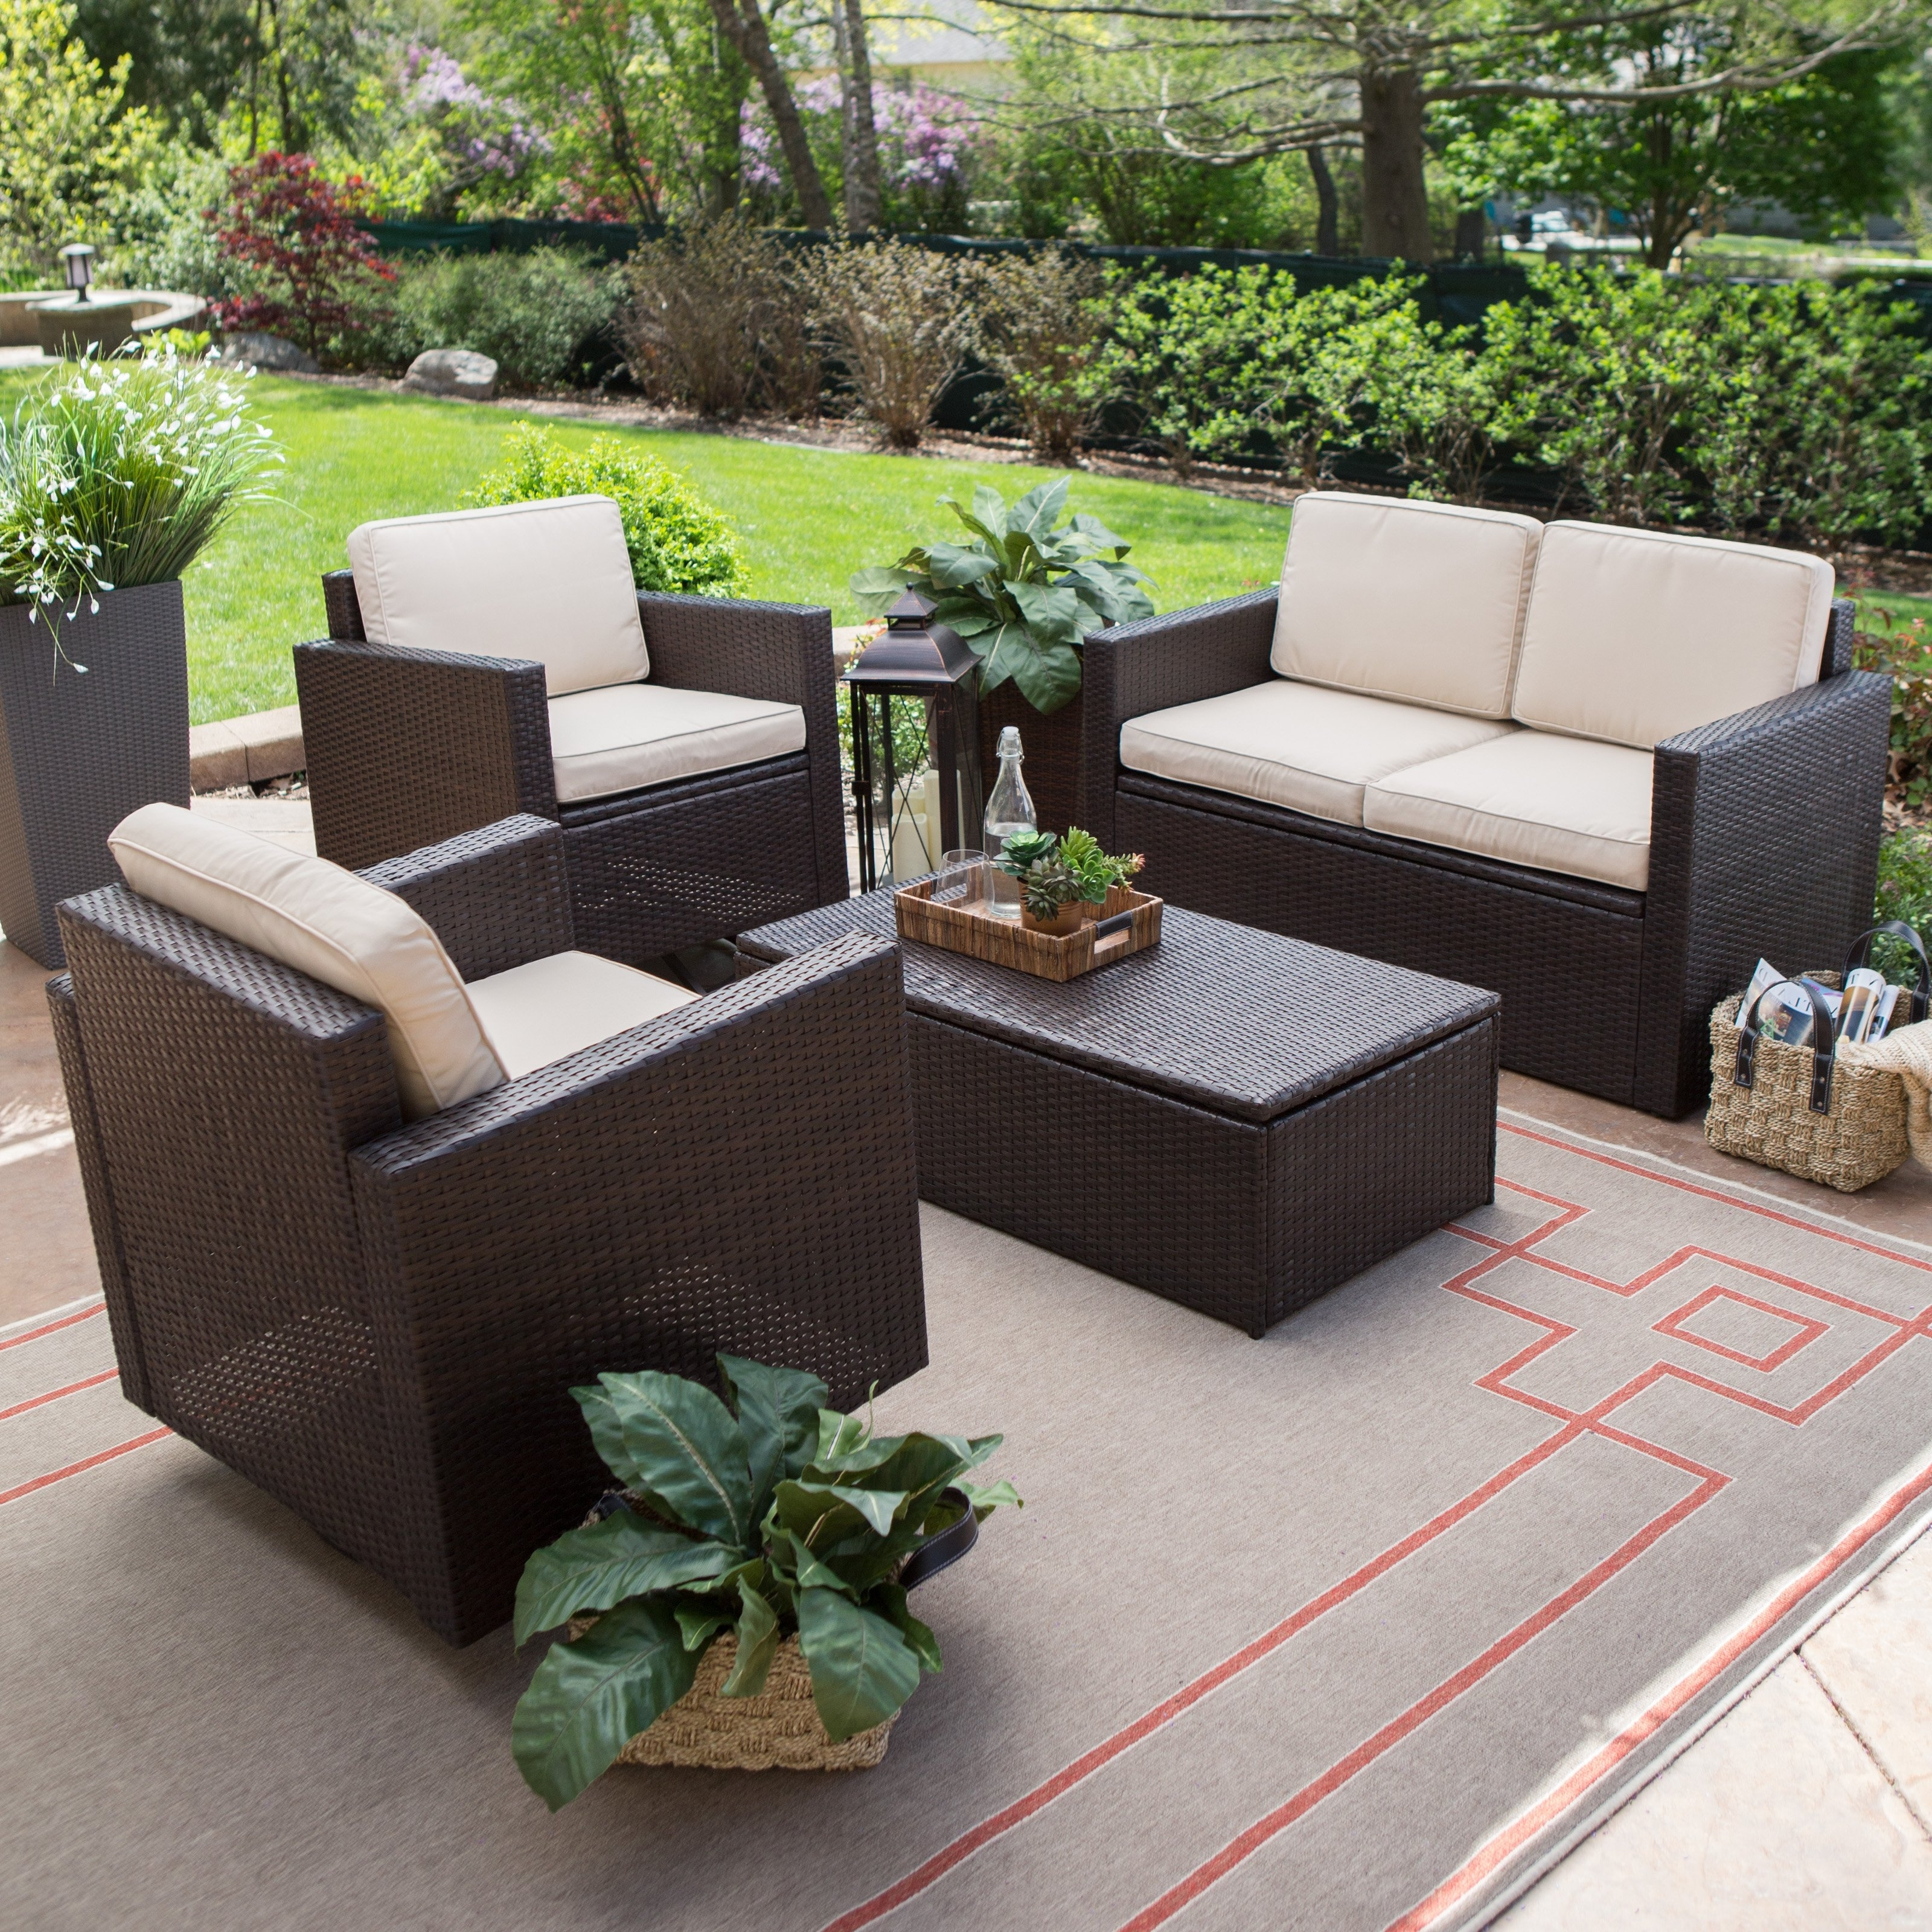 Resin Wicker Patio Conversation Sets With Most Current Coral Coast Berea Wicker 4 Piece Conversation Set With Storage (View 15 of 20)